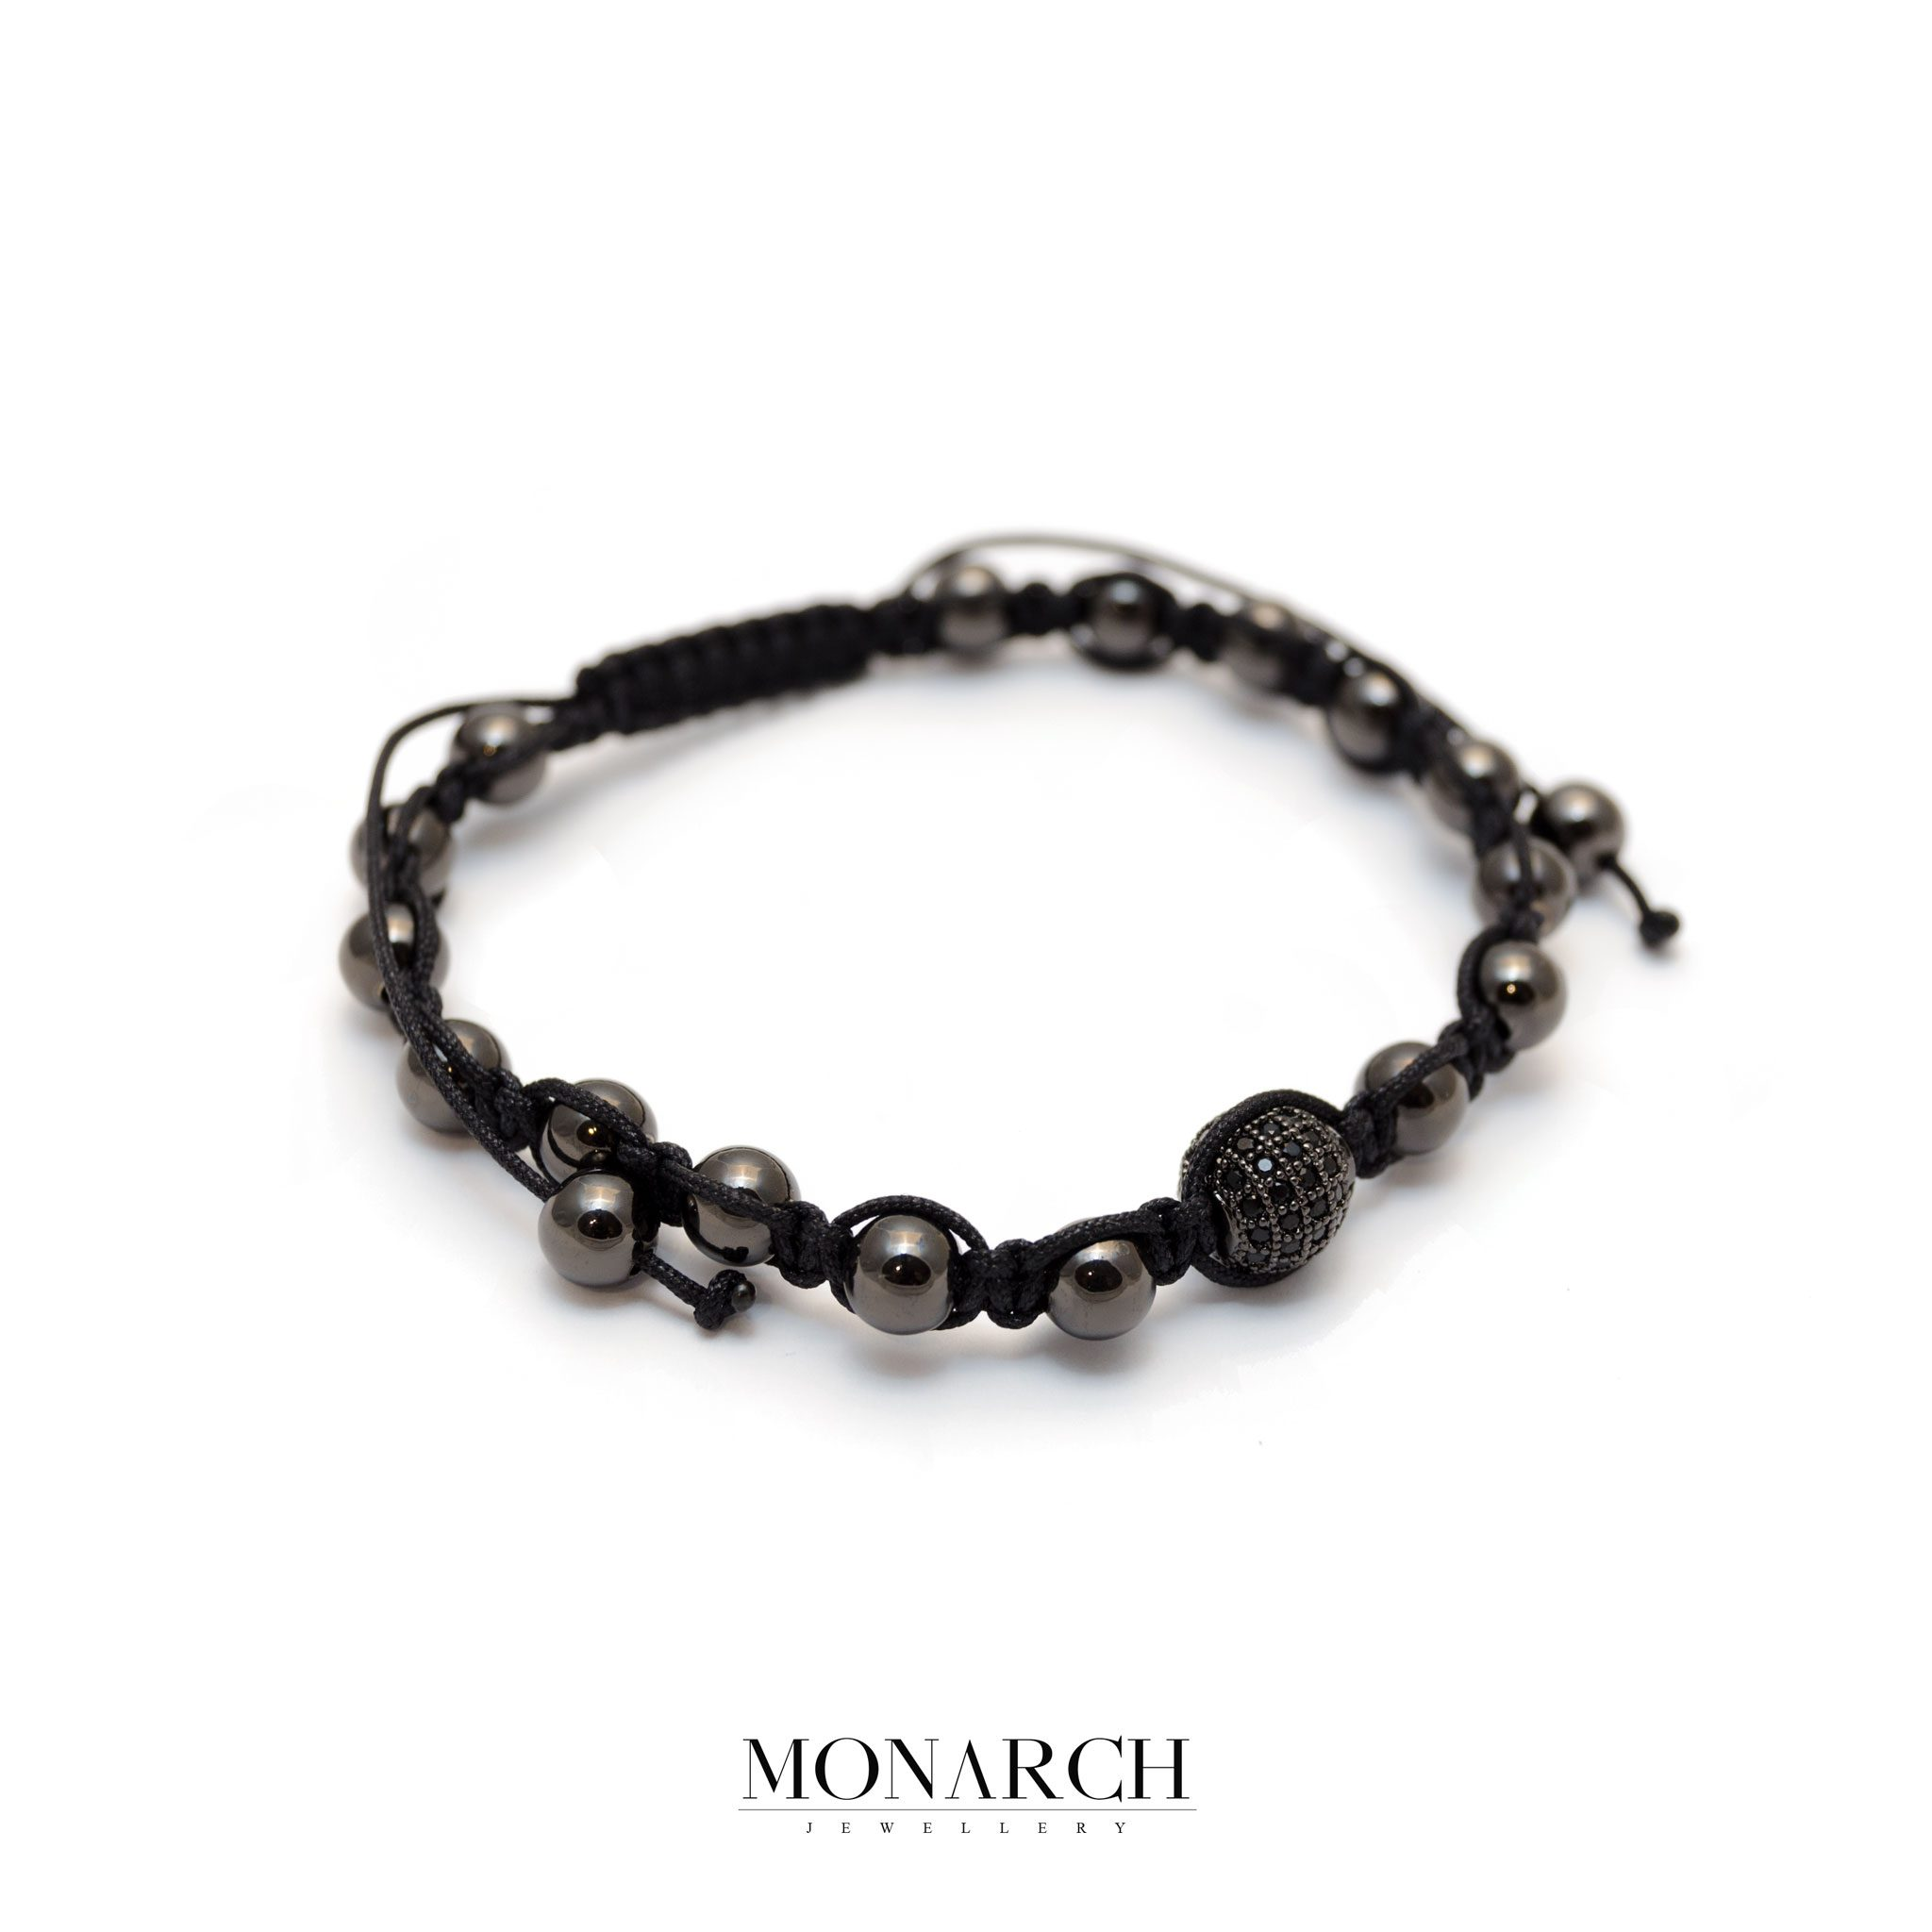 Monarch Jewellery Black Beads Macrame Bracelet